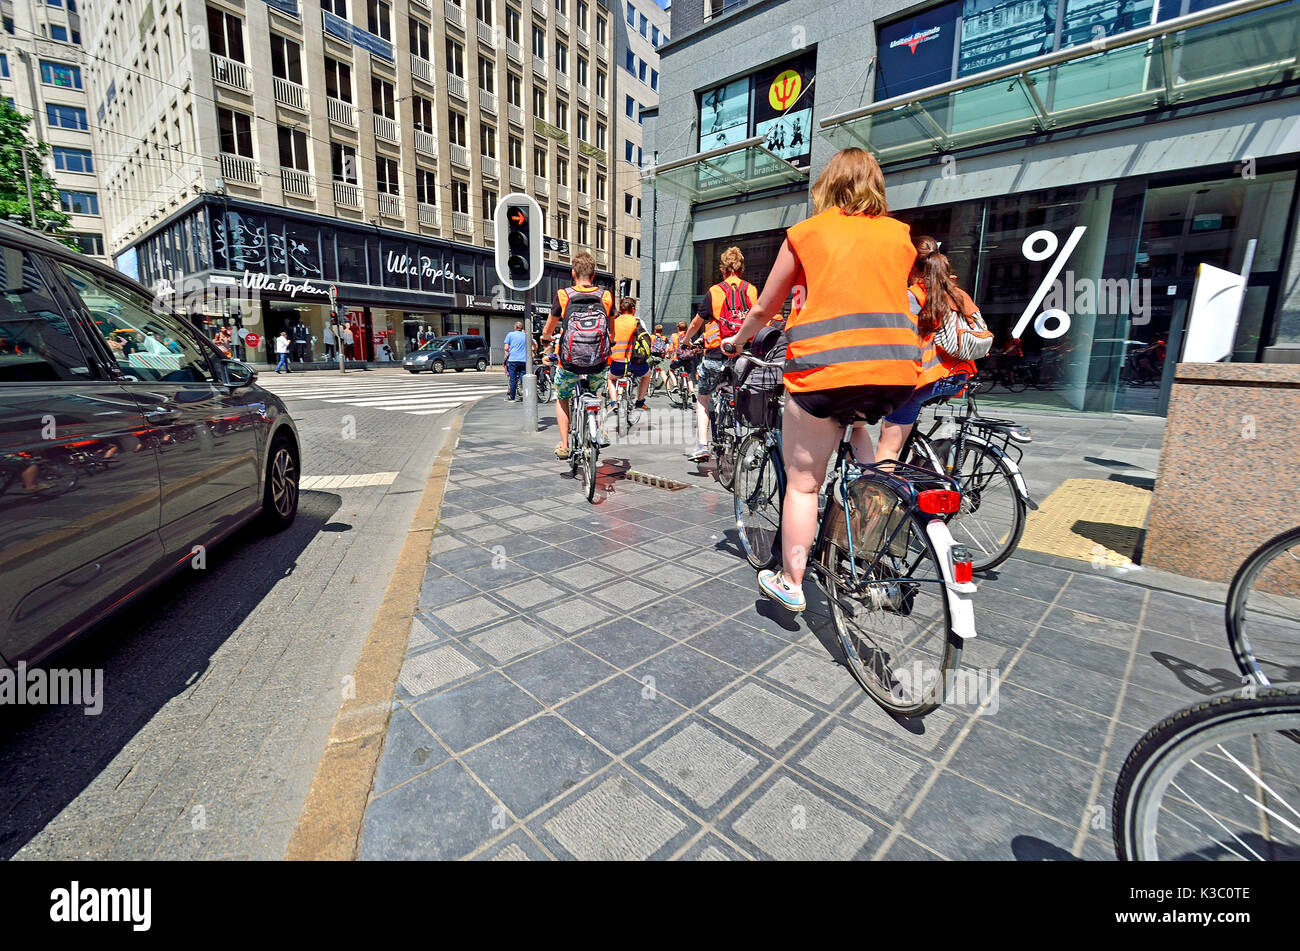 Antwerp, Belgium. Cyclists in high visibility jackets - Stock Image